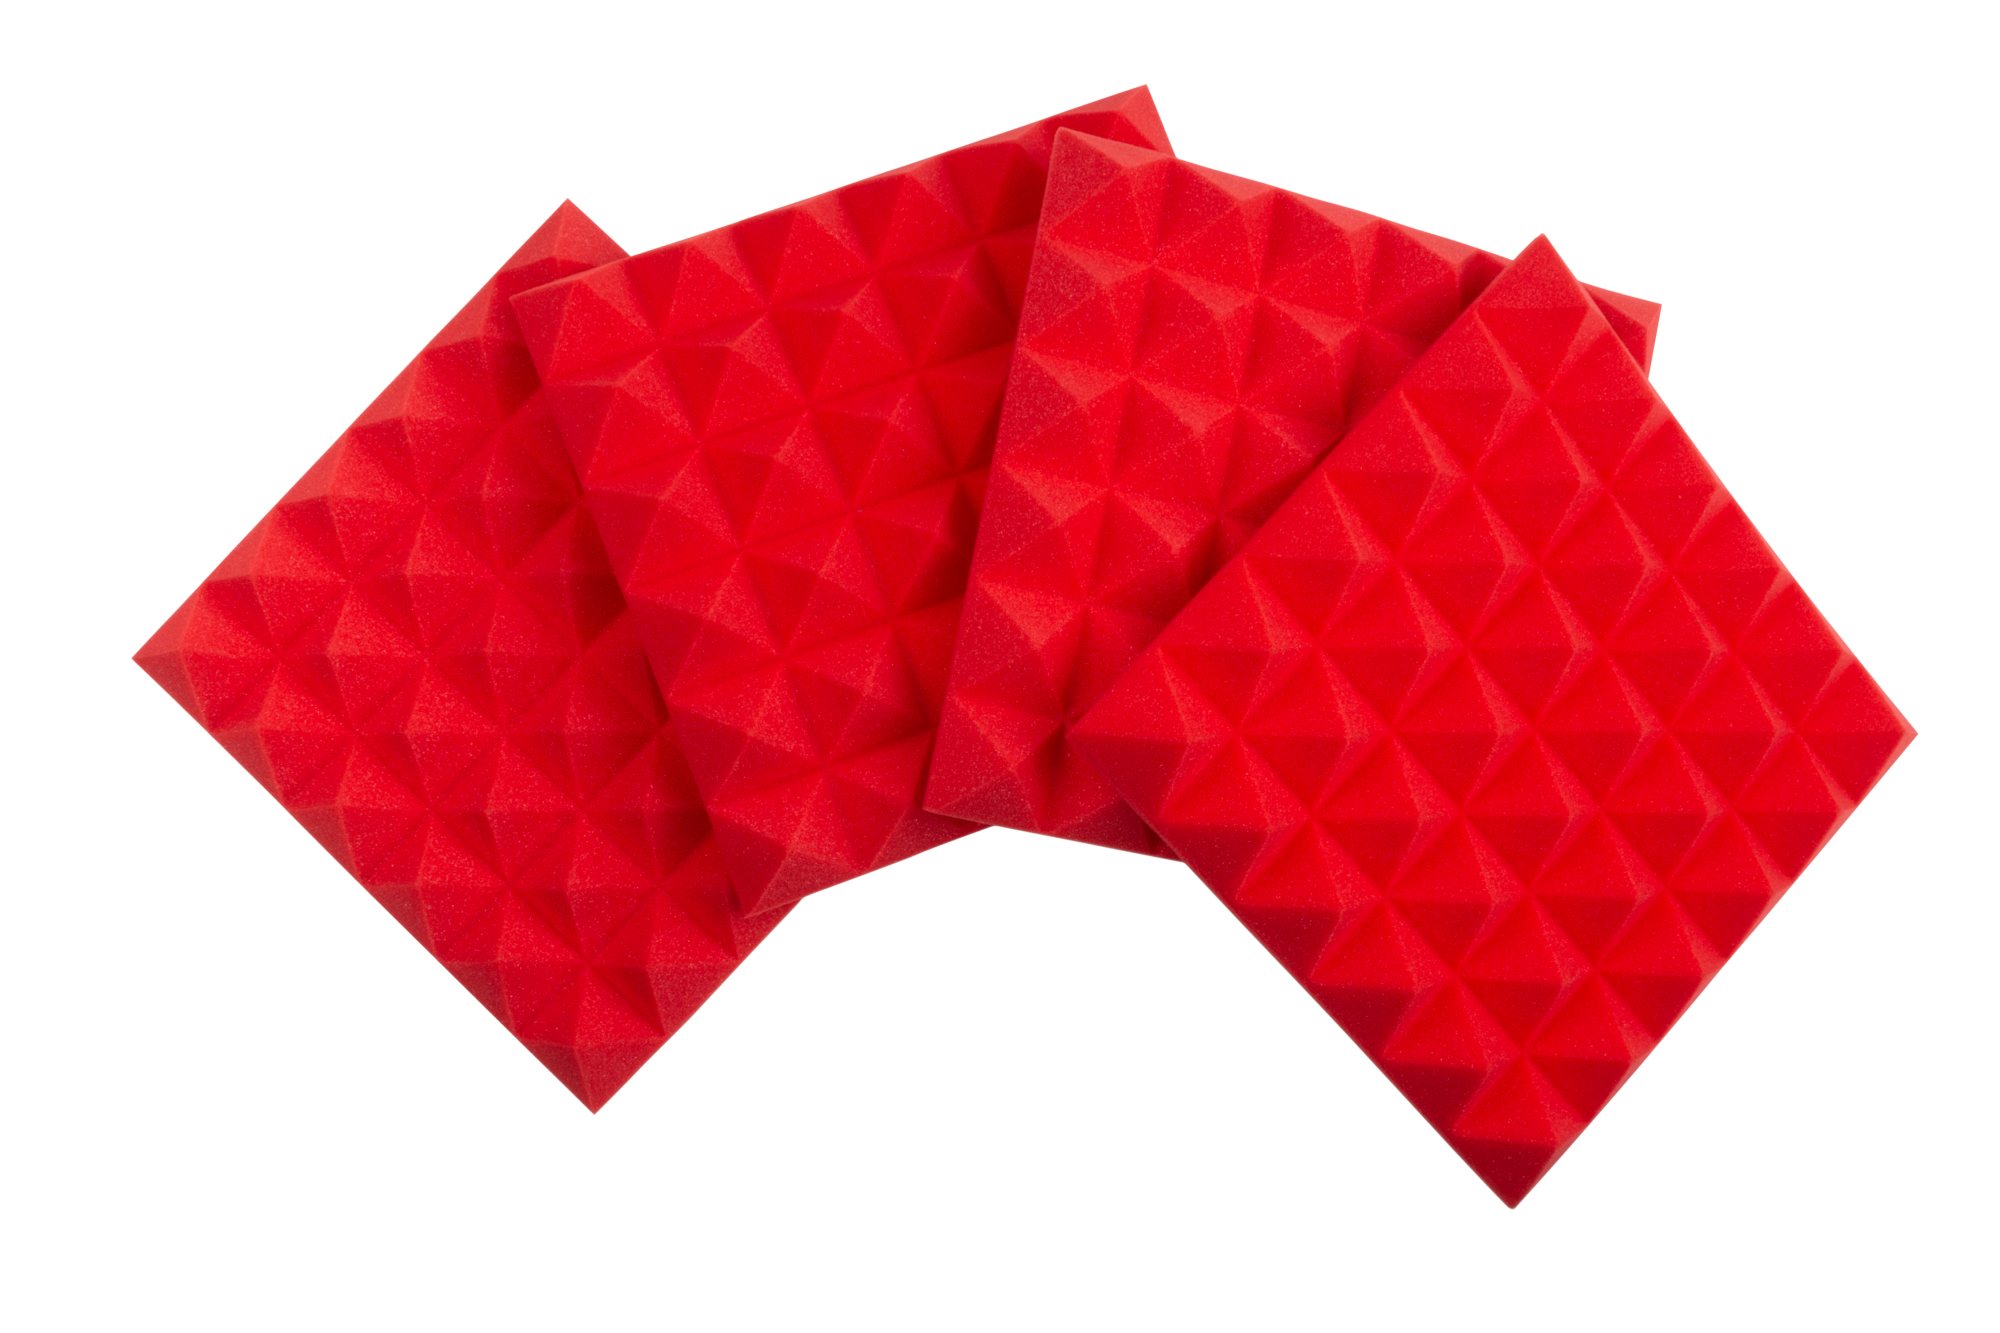 """Frameworks GFW-ACPNL1212PRED-4PK Four (4) Pack of 2""""-Thick Acoustic Foam Pyramid Panels 12""""x12"""" – Red Color"""